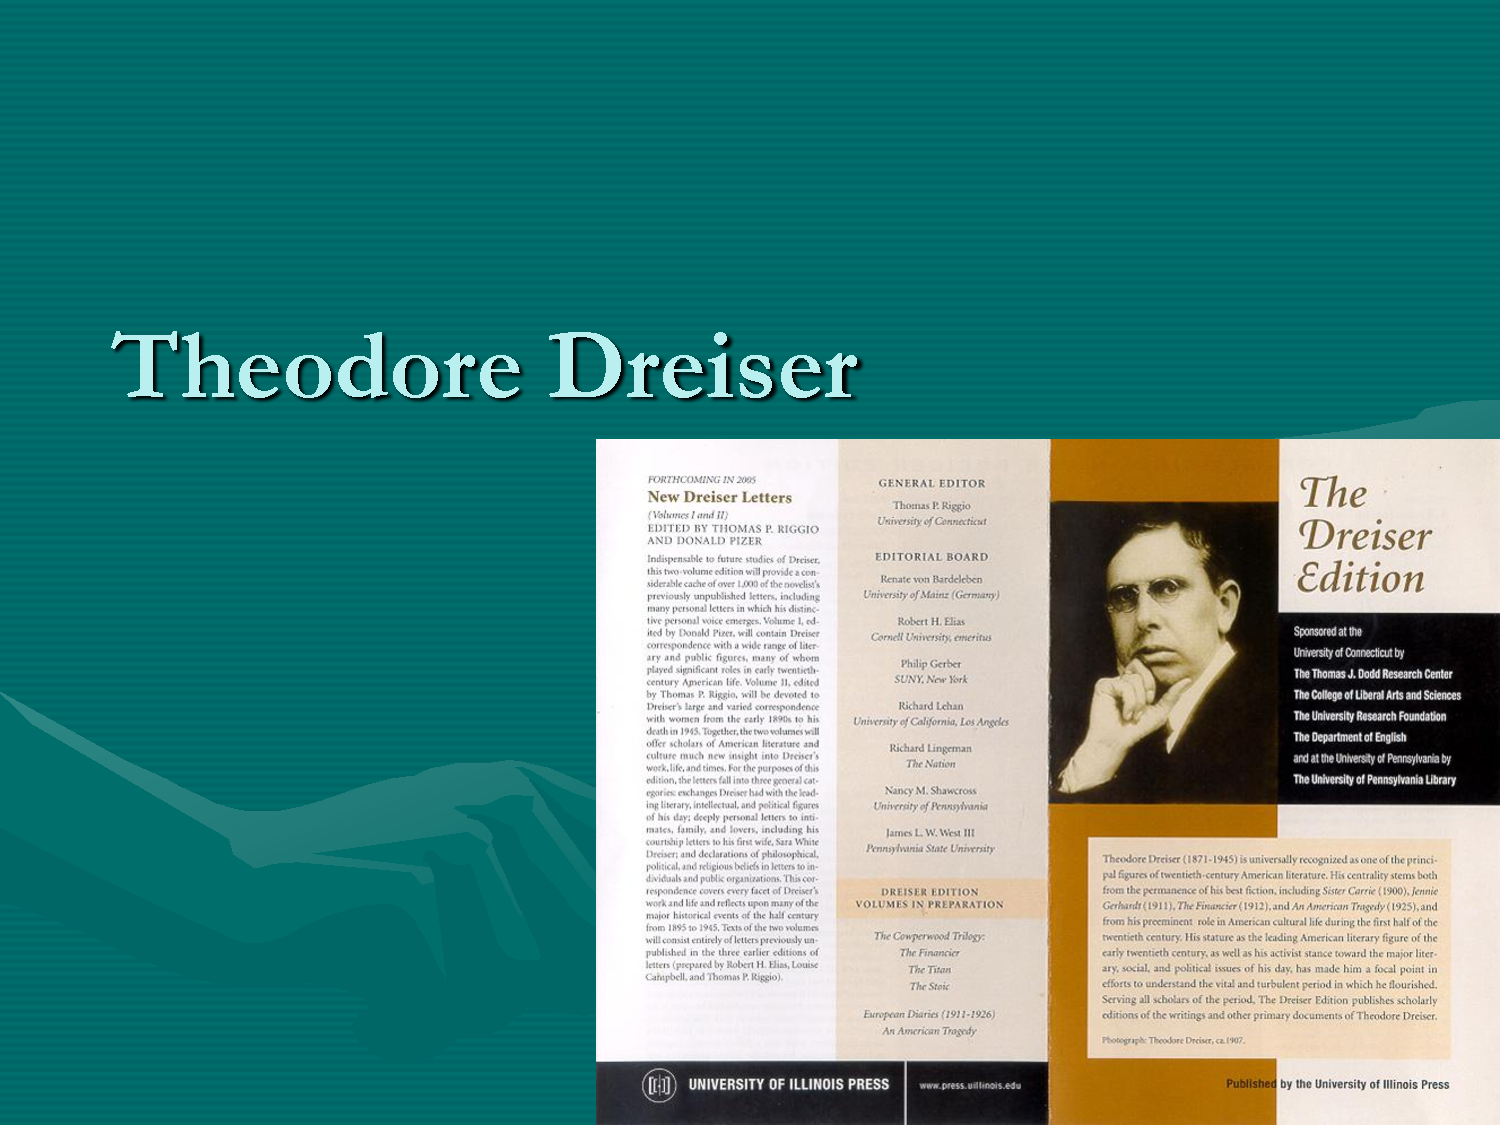 a biography of theodore dreiser a famous novelist Reading pathways: theodore dreiser i go way back but, as with many of my most beloved writers, he and i started off on the wrong foot i bought his most famous (and first) novel i also recommend richard lingeman's biography, theodore dreiser: an american journey if.